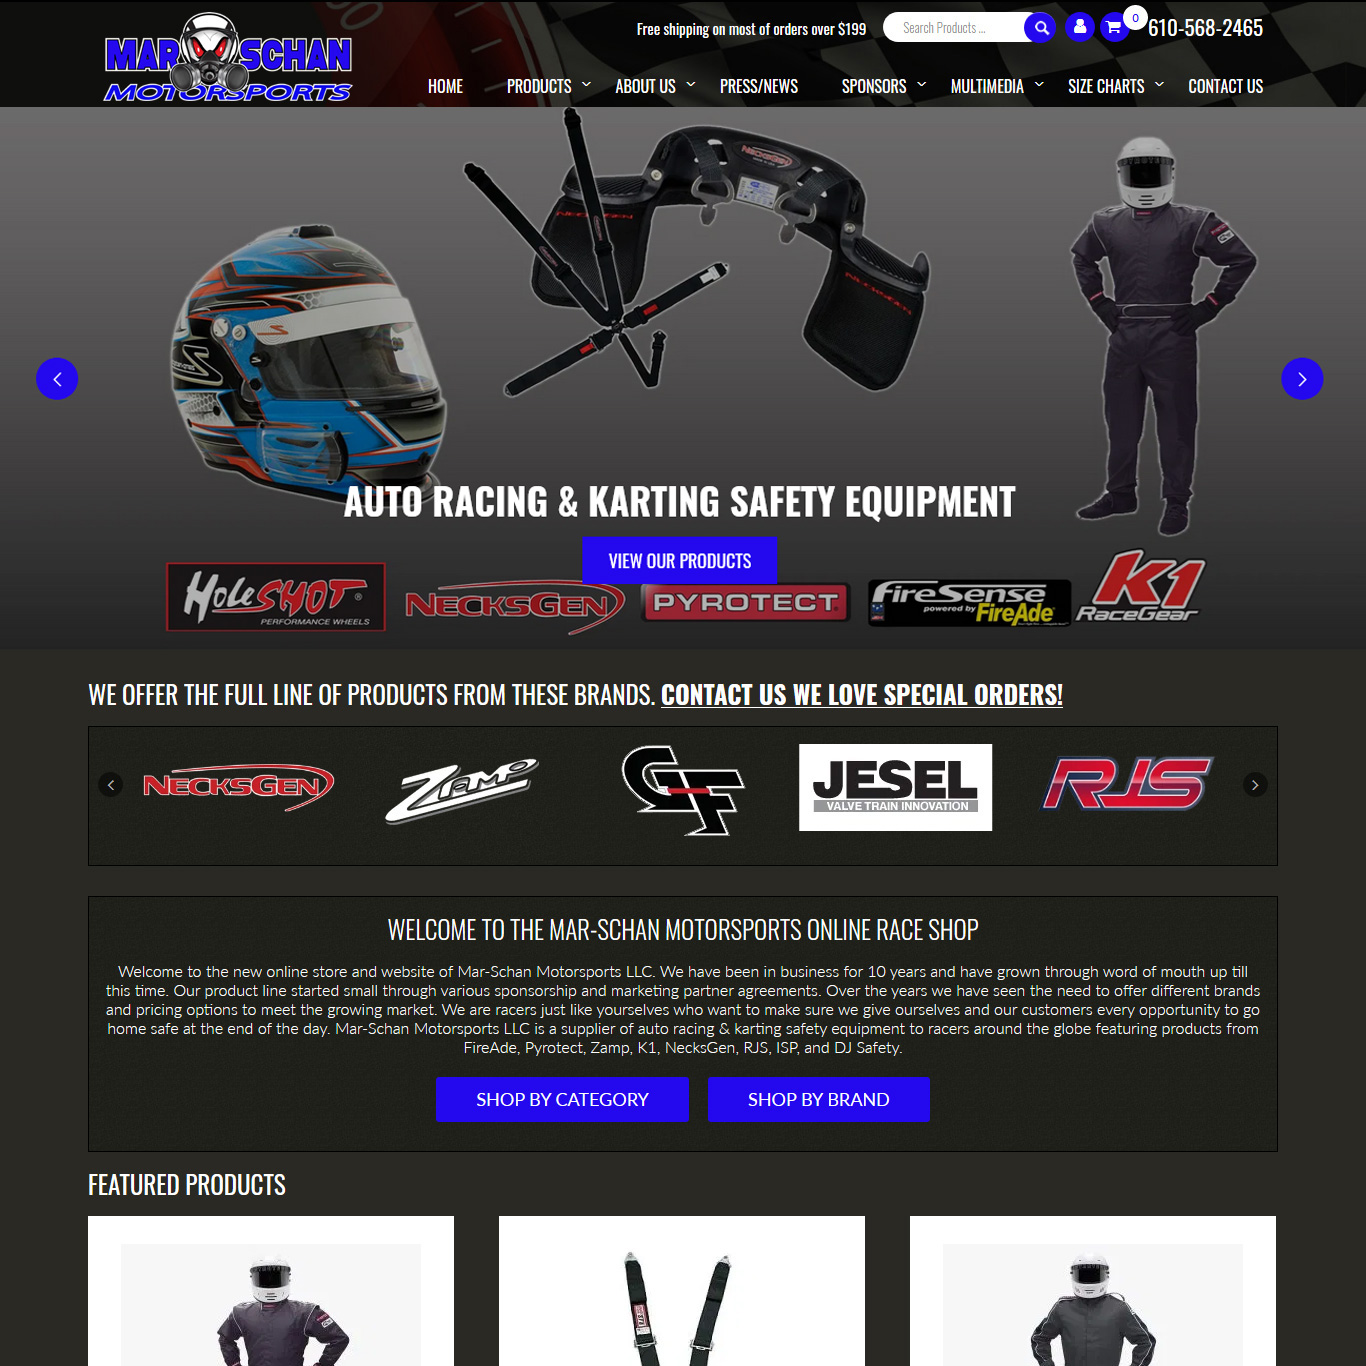 Mar-Schan Motorsports racing safety equipment retailer website design